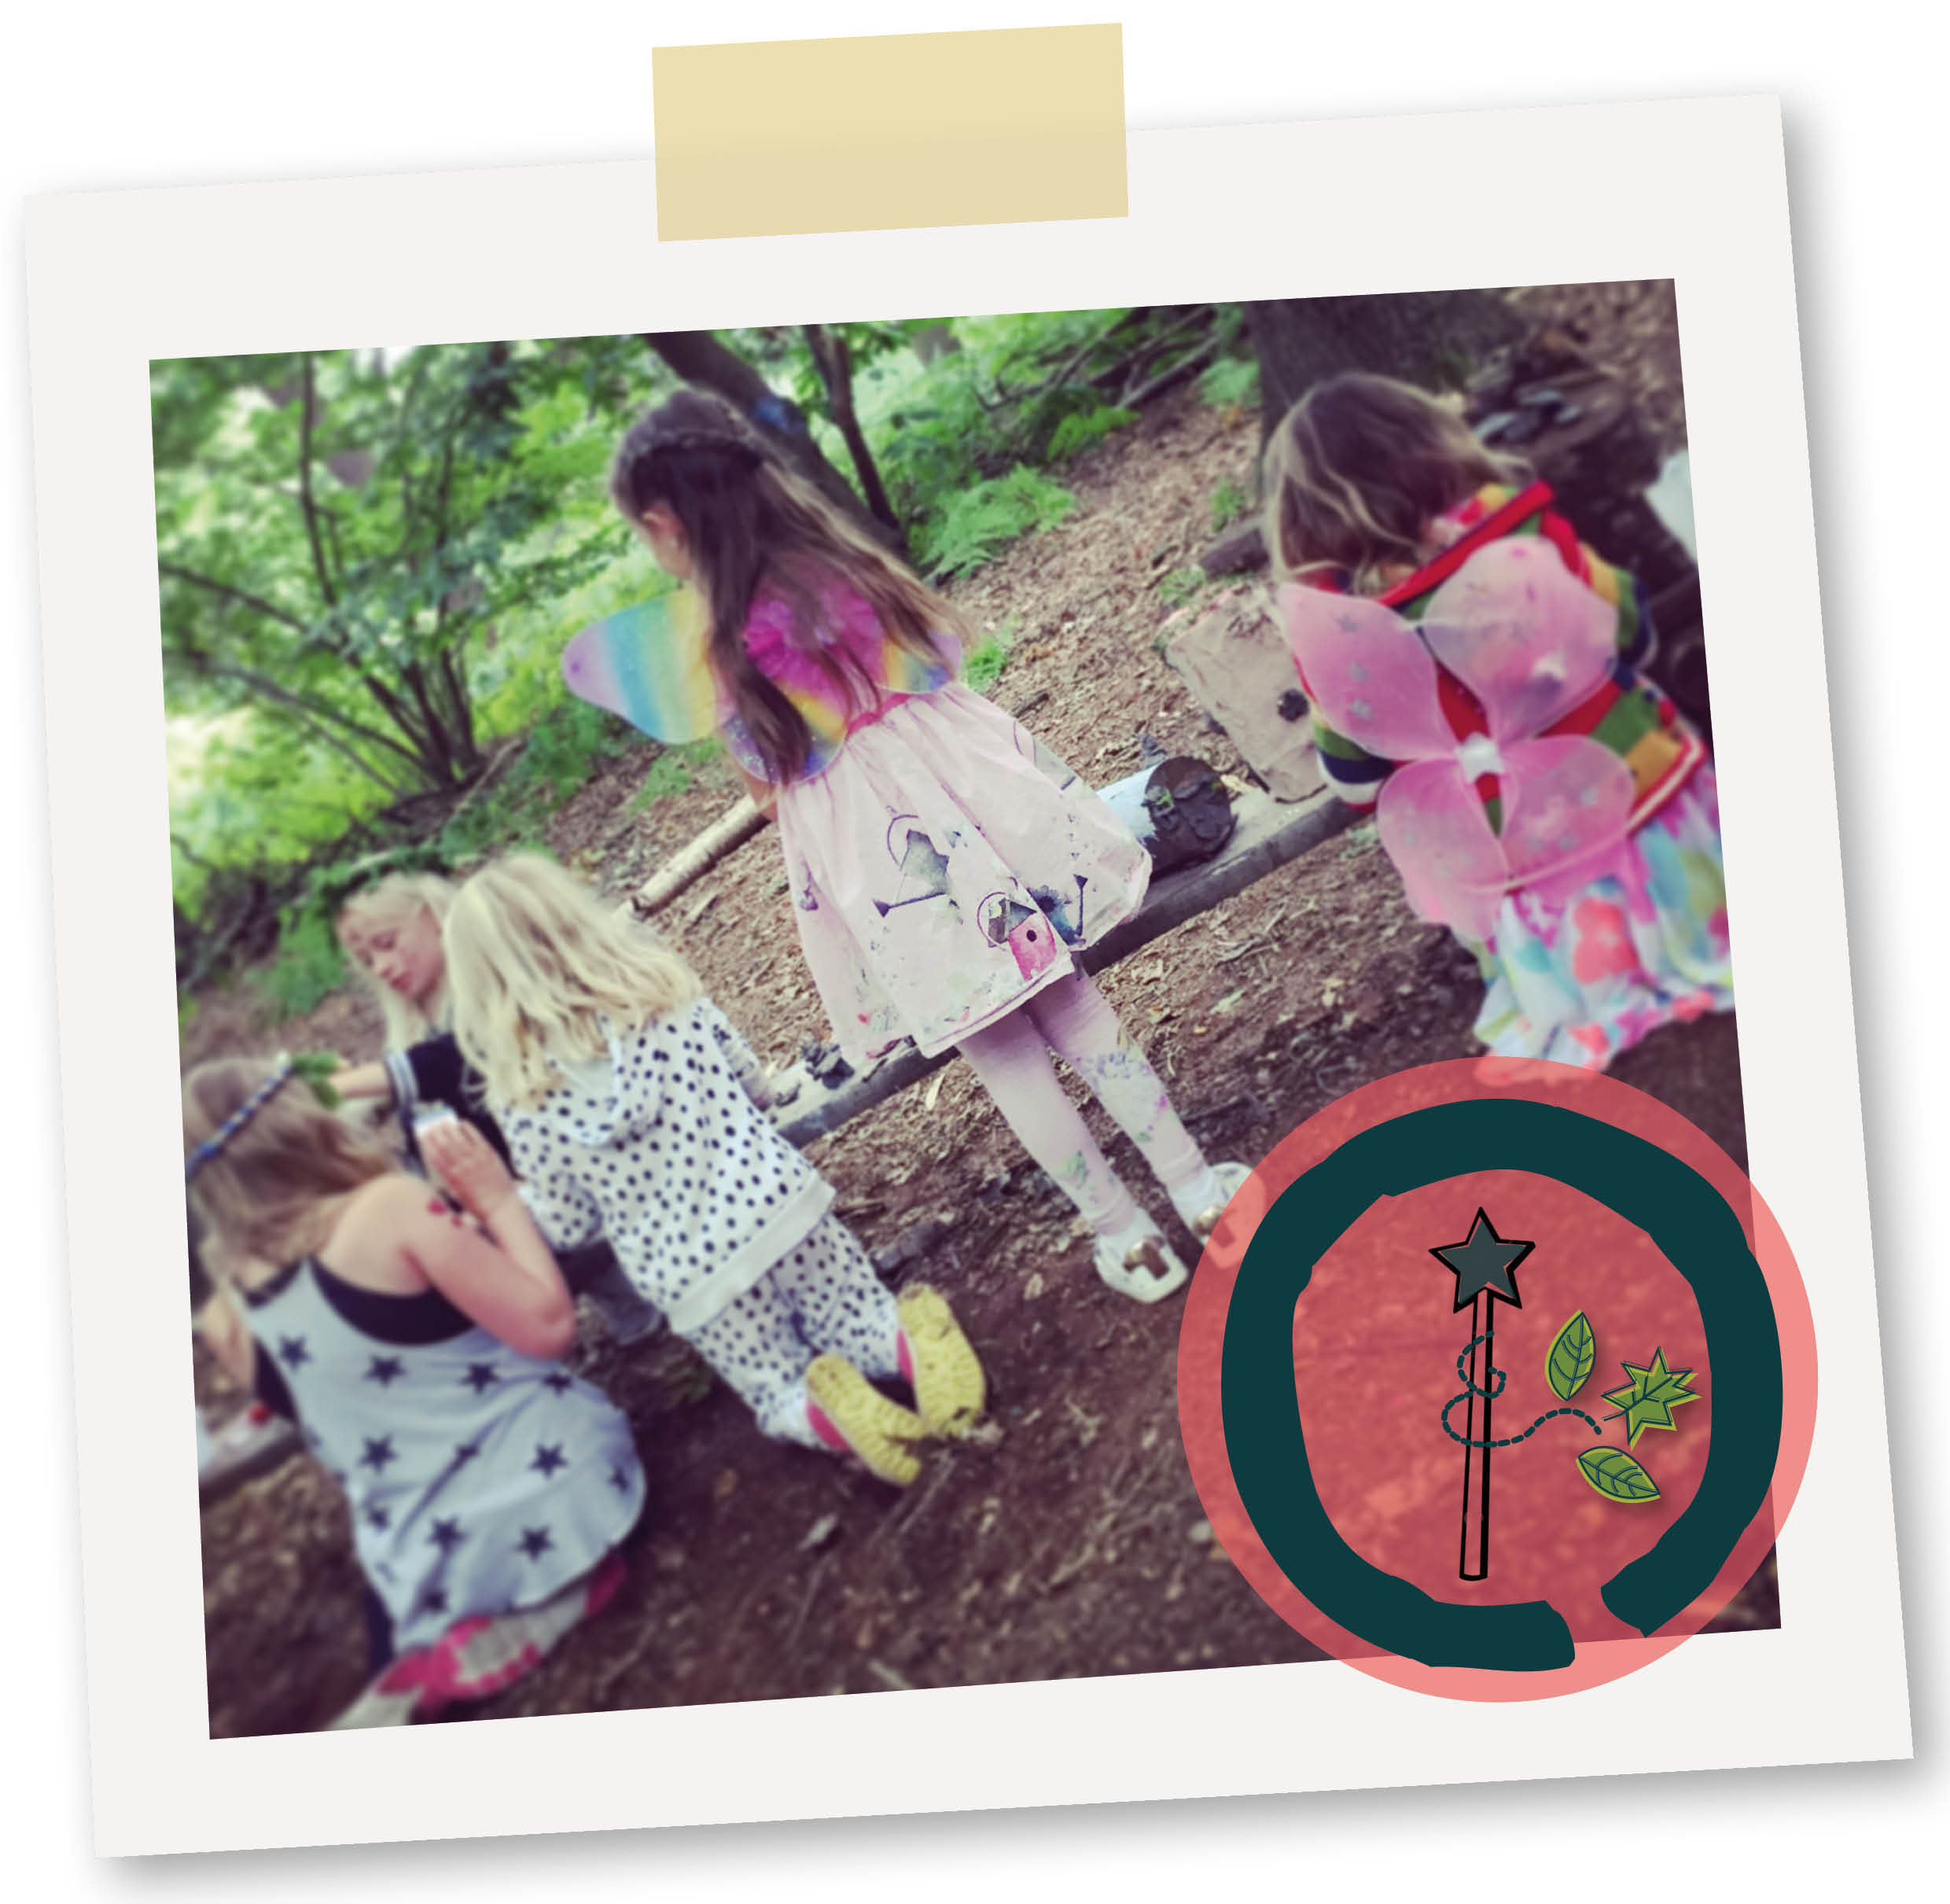 Woodland Magic - GET CREATIVE OUTDOORS WITH MAGICAL wands, crowns, fairy houses & MINI HERB GARDENS. Plus cook up some fairy potions…Mystical fun for kids!2 hour partyPackages tailored for all ages£185 for up to 15 children